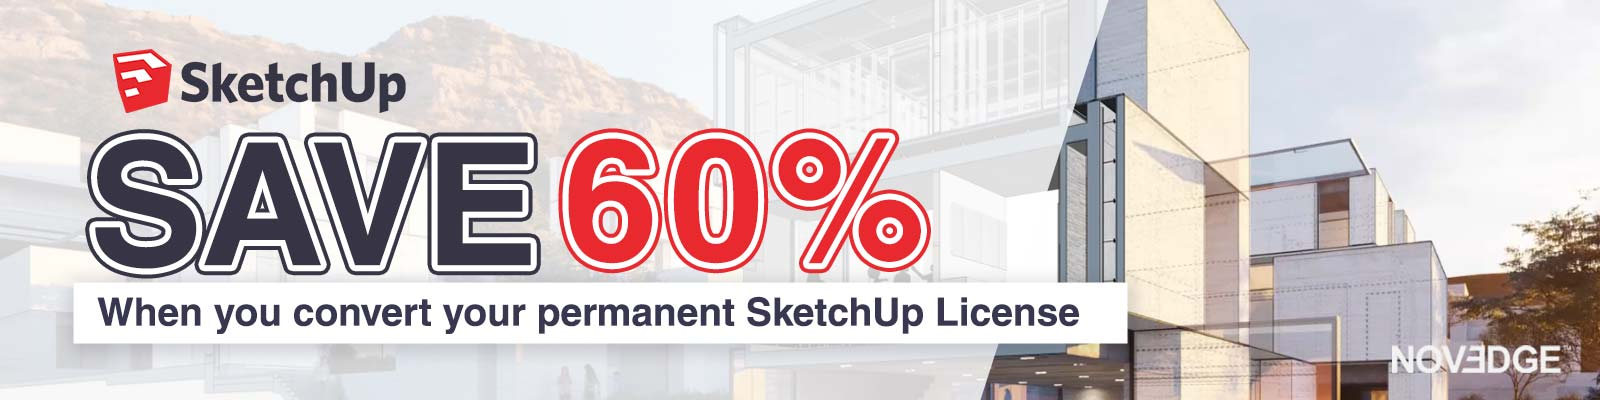 Convert Your SketchUp License and Save